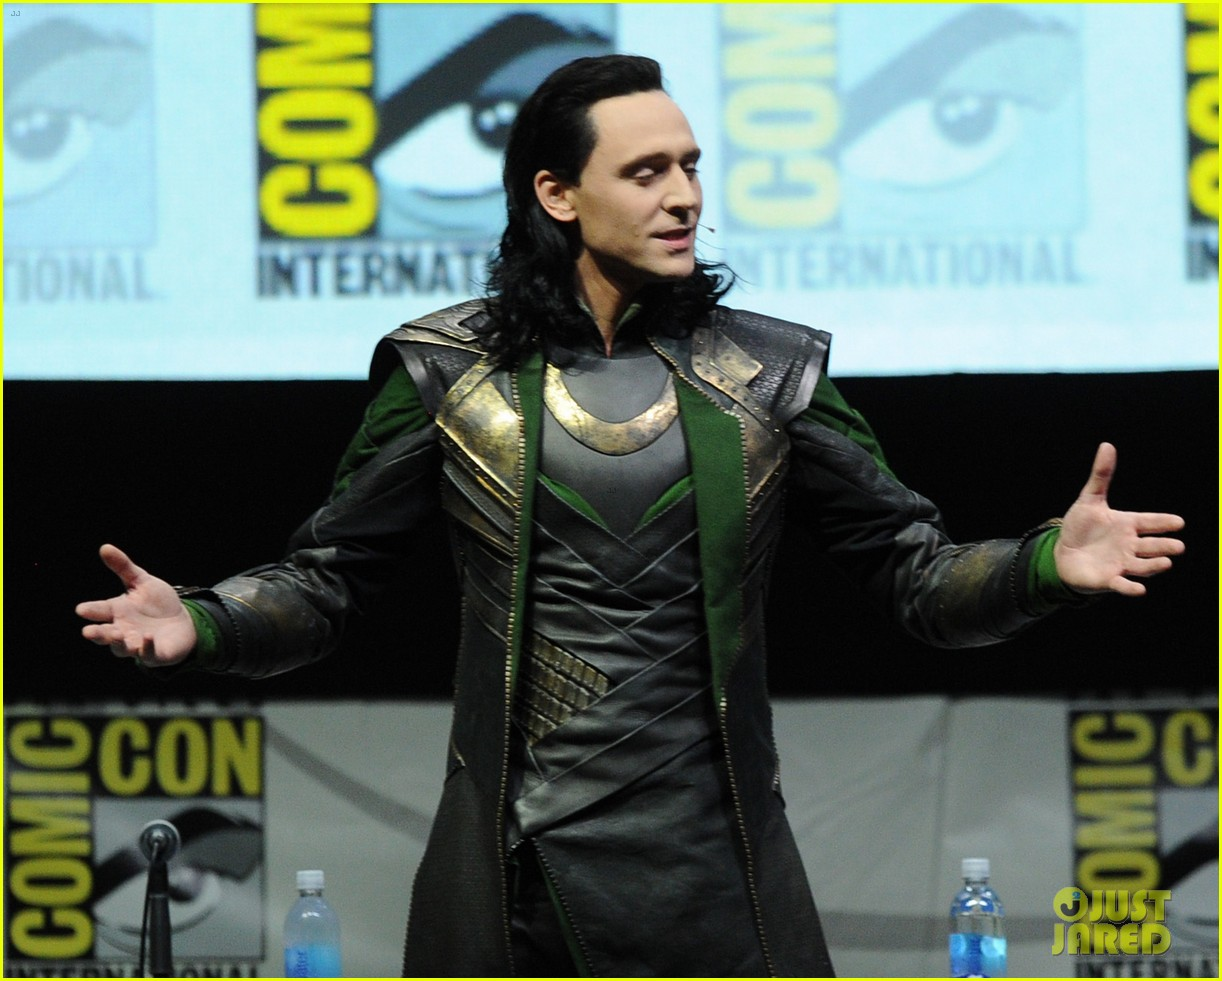 tom hiddleston attends thor comic con panel as loki 092913456